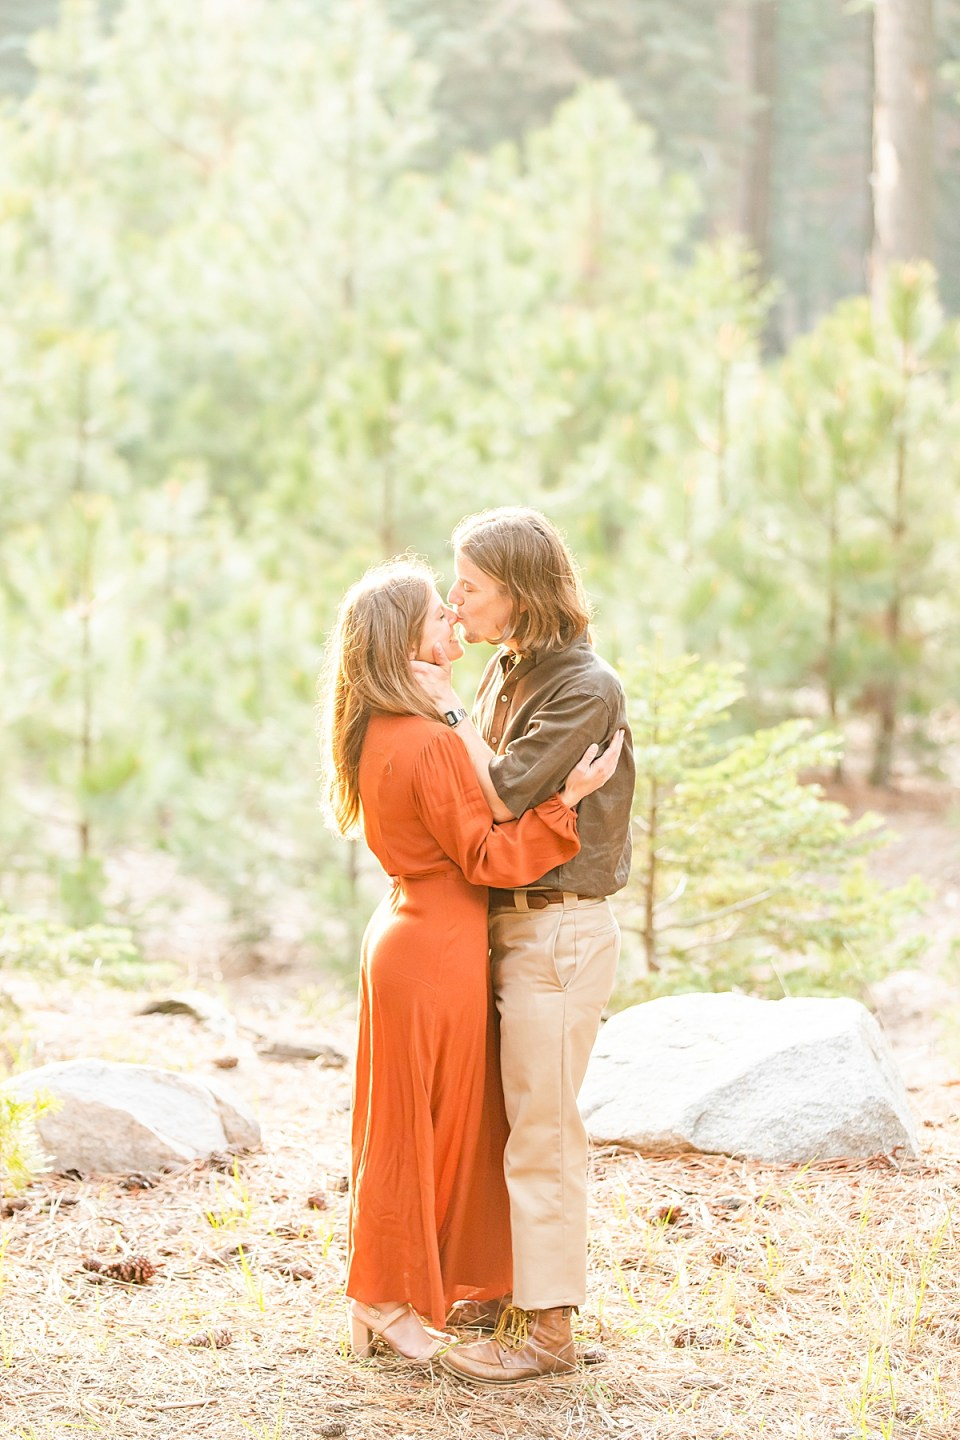 Abby & Rothwell holding each other close as Rothwell kisses her nose during their Lake Arrowhead Engagement session